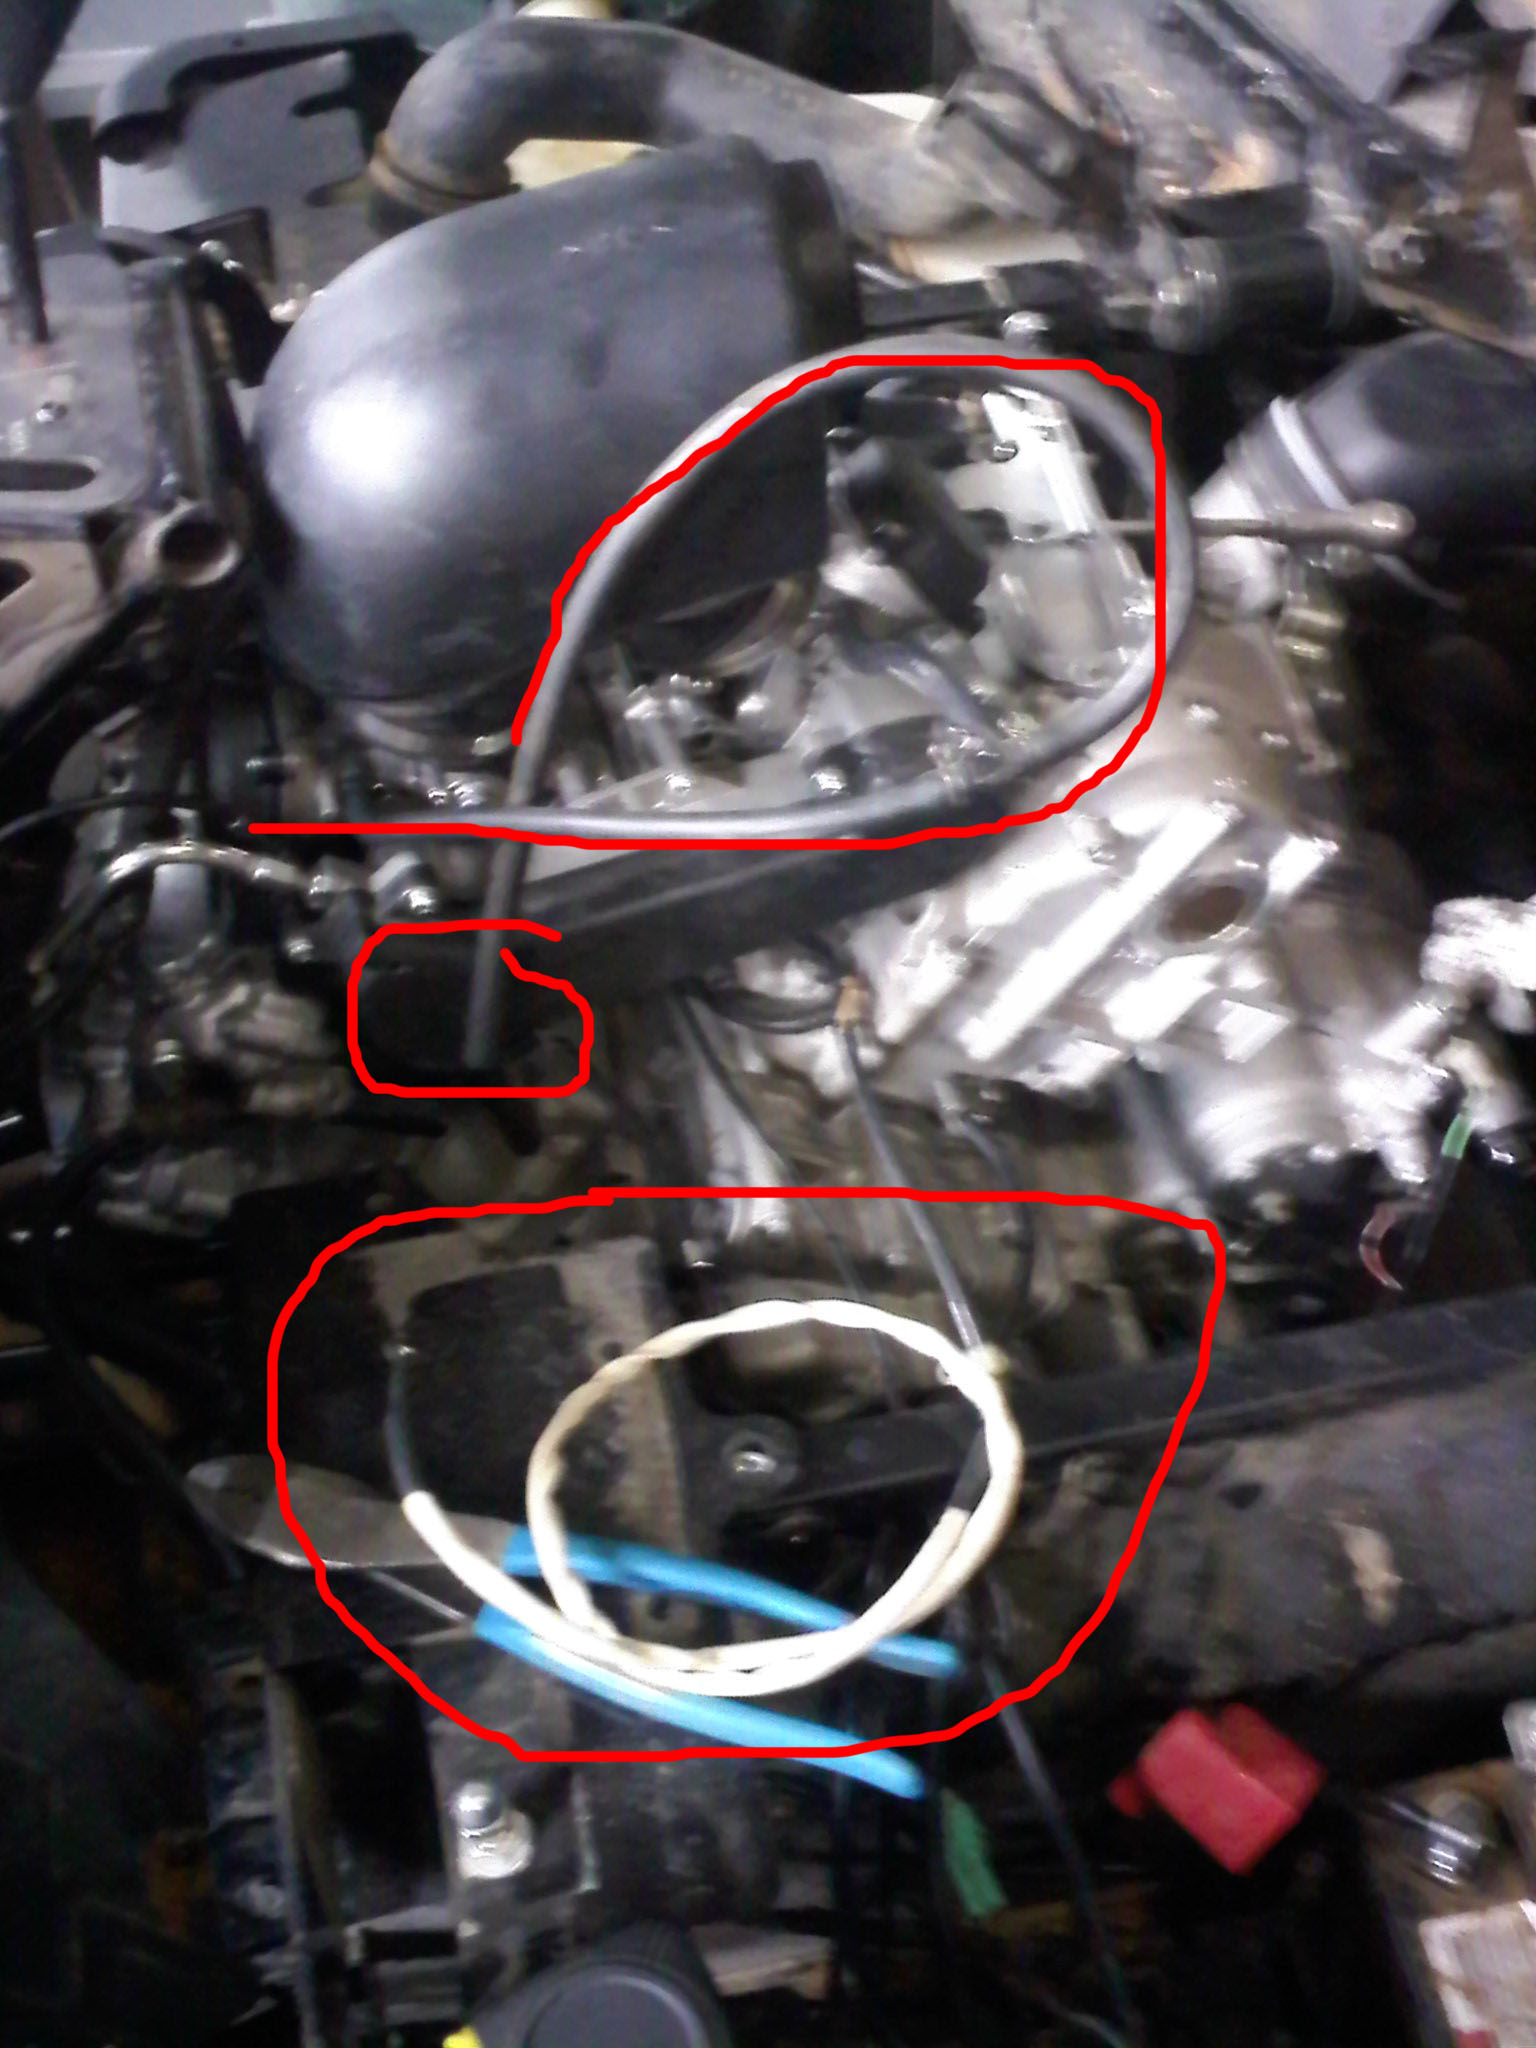 6 Wire Motor Diagram Y Simple Guide About Wiring Moto Guzzi Engine Where Do These 2 Lines Go Kawasaki Teryx Forum